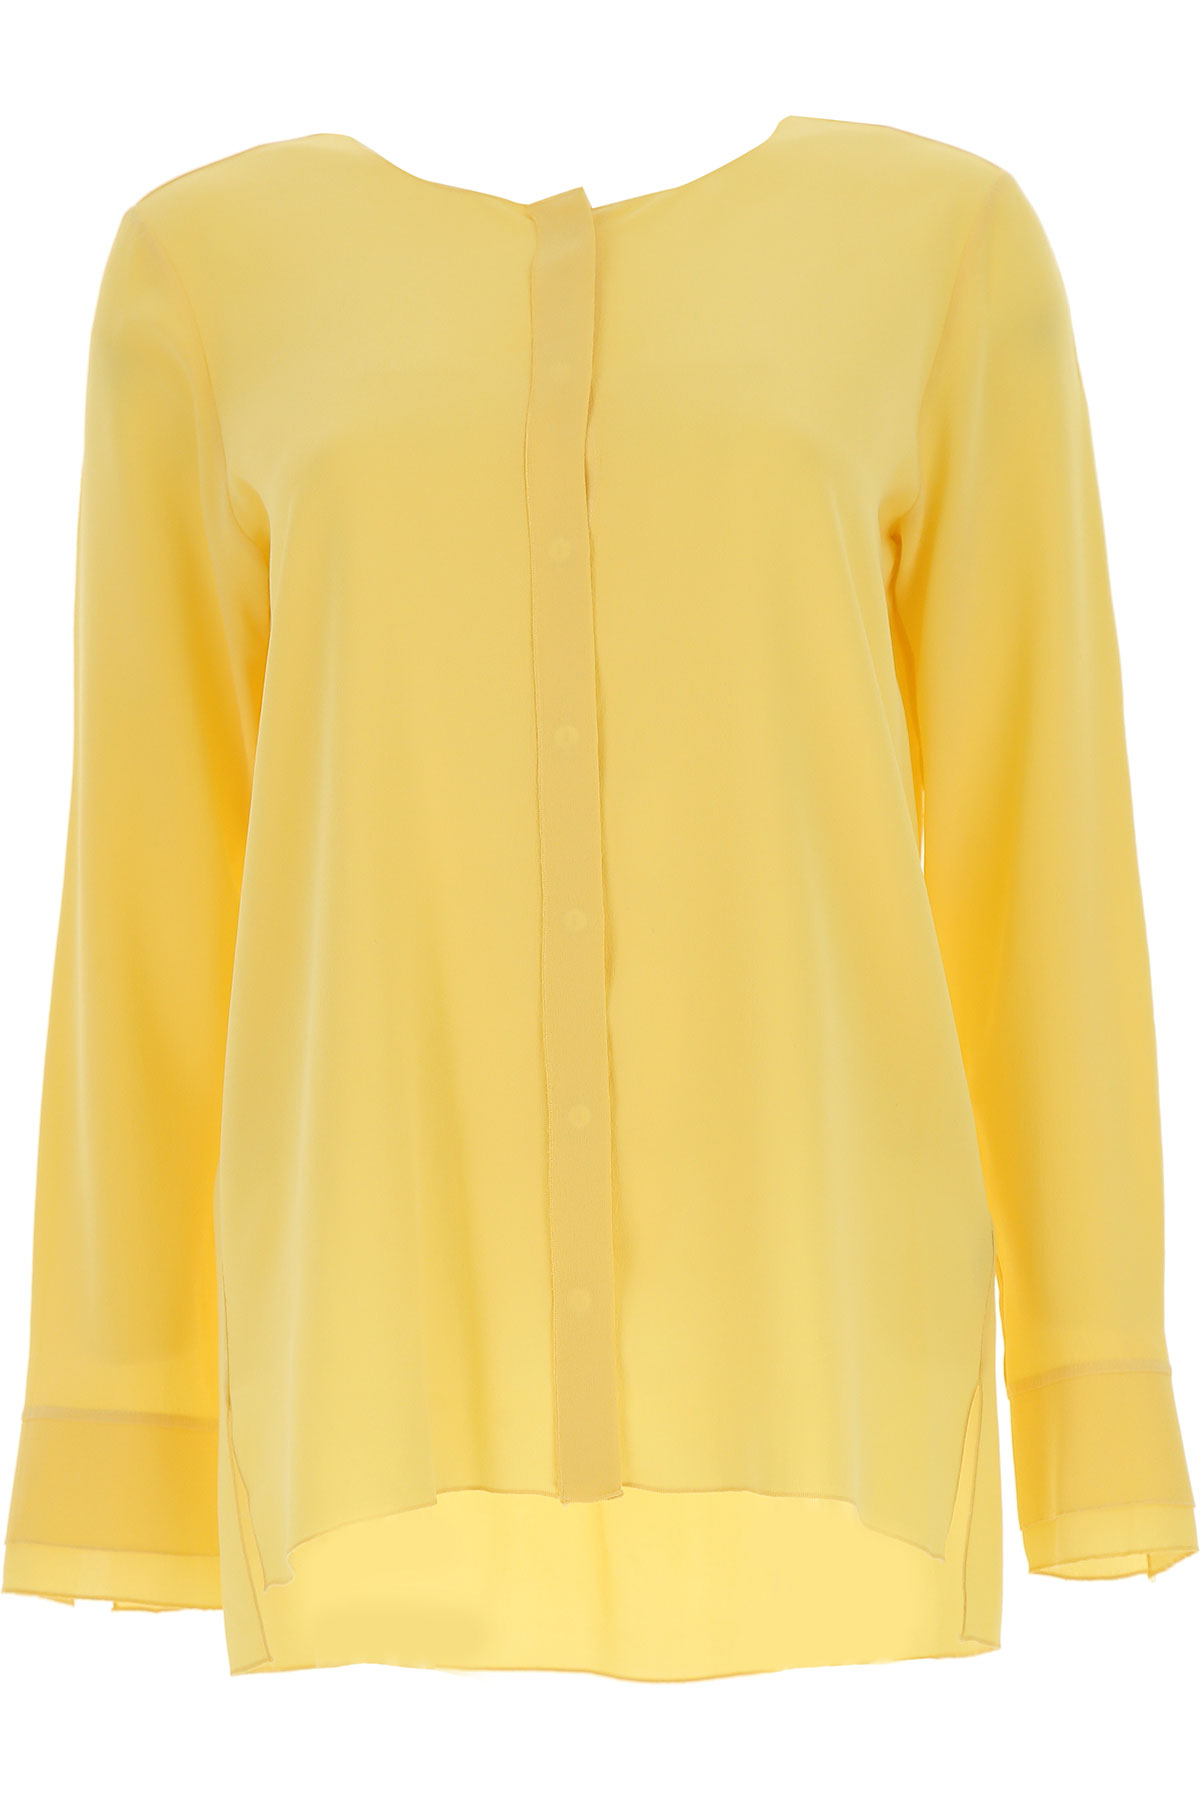 Image of Her Shirt Shirt for Women On Sale, Yellow, Silk, 2017, 4 6 8